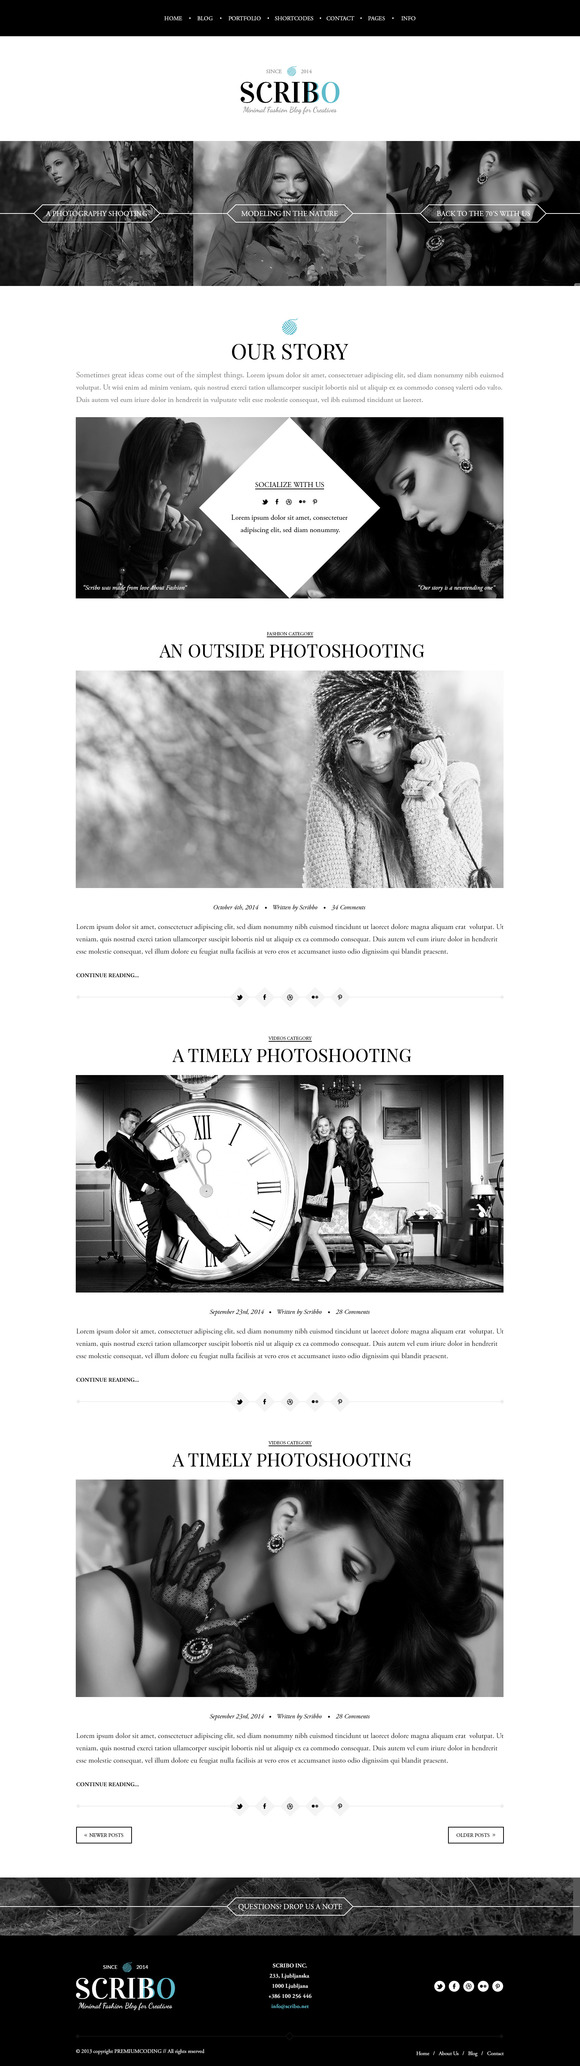 Scribo Fashion Blog Template